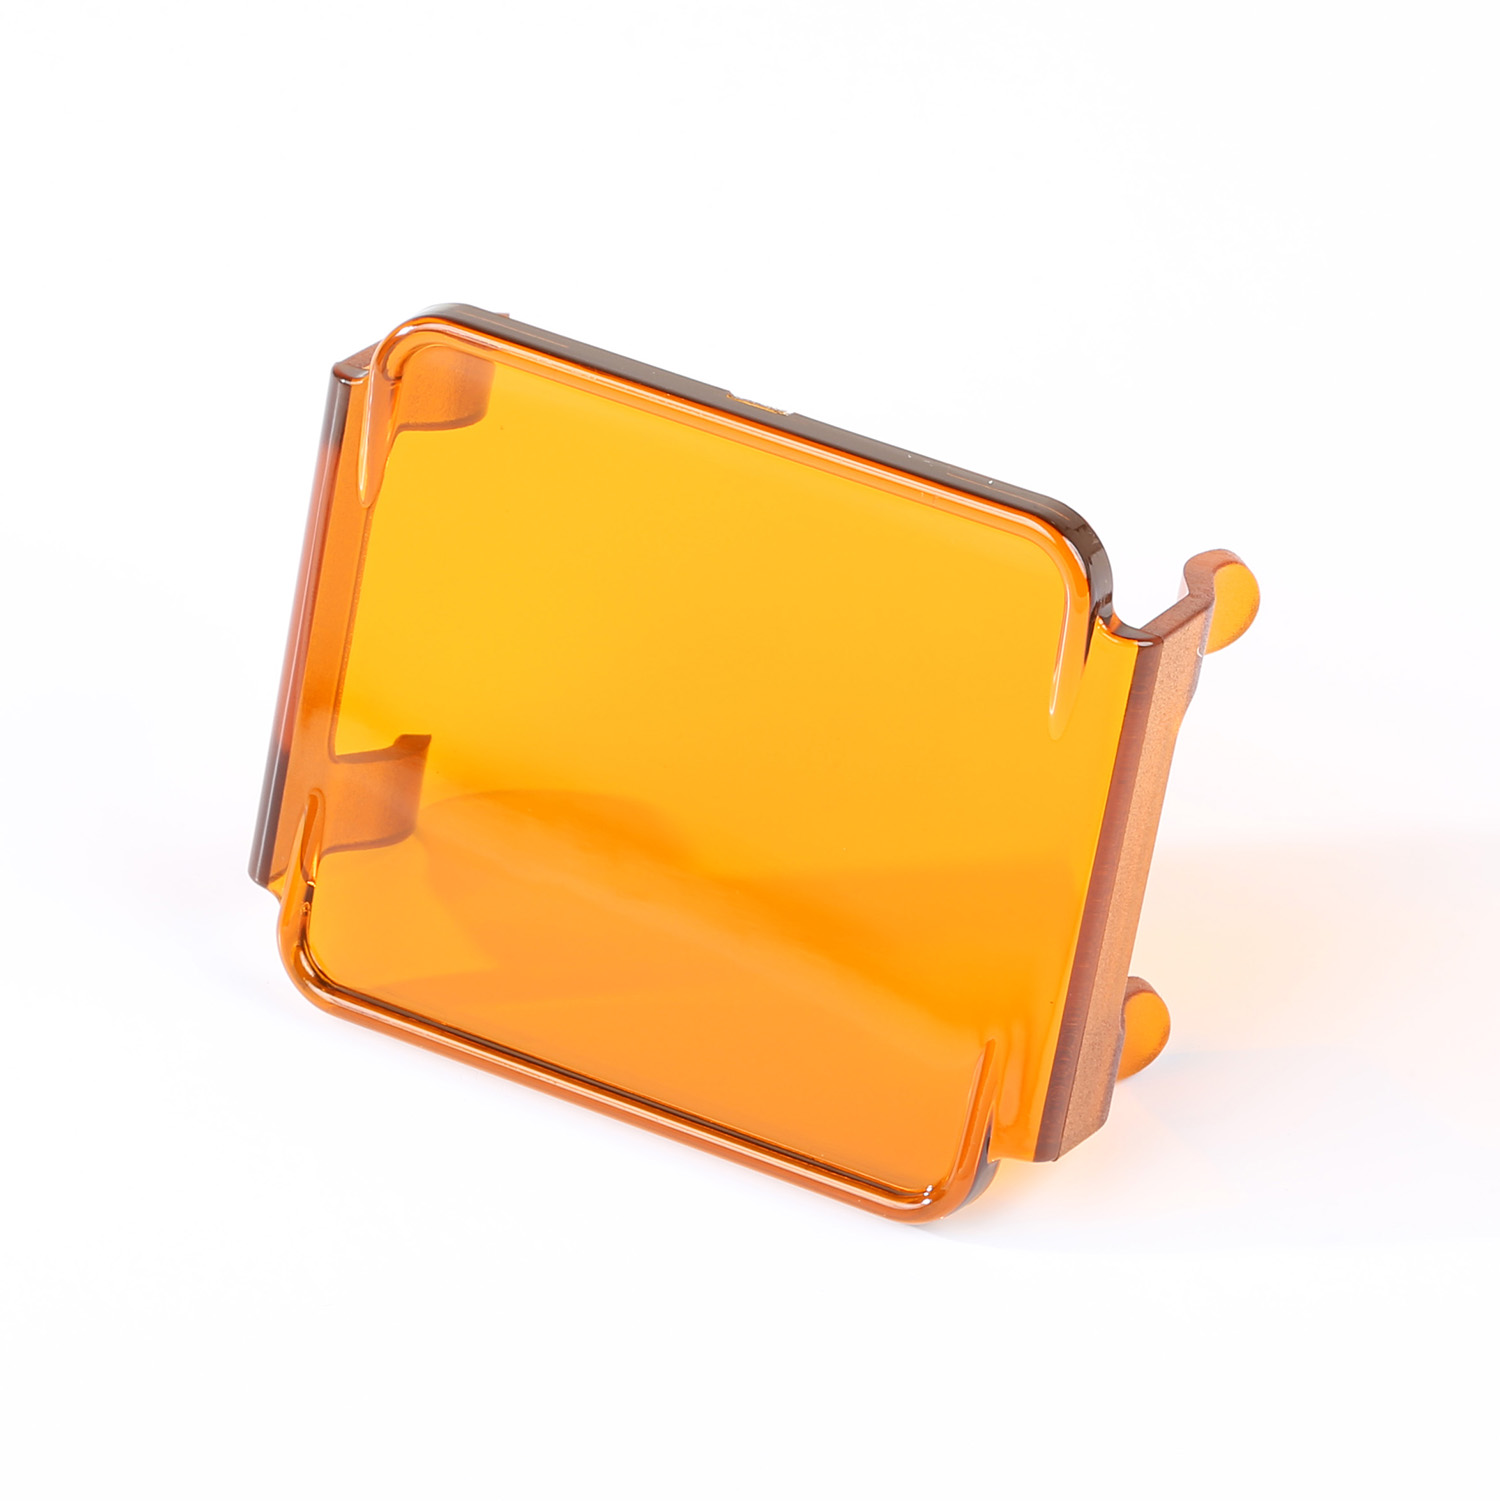 Rugged Ridge 3 Inch Square LED Light Cover, Amber